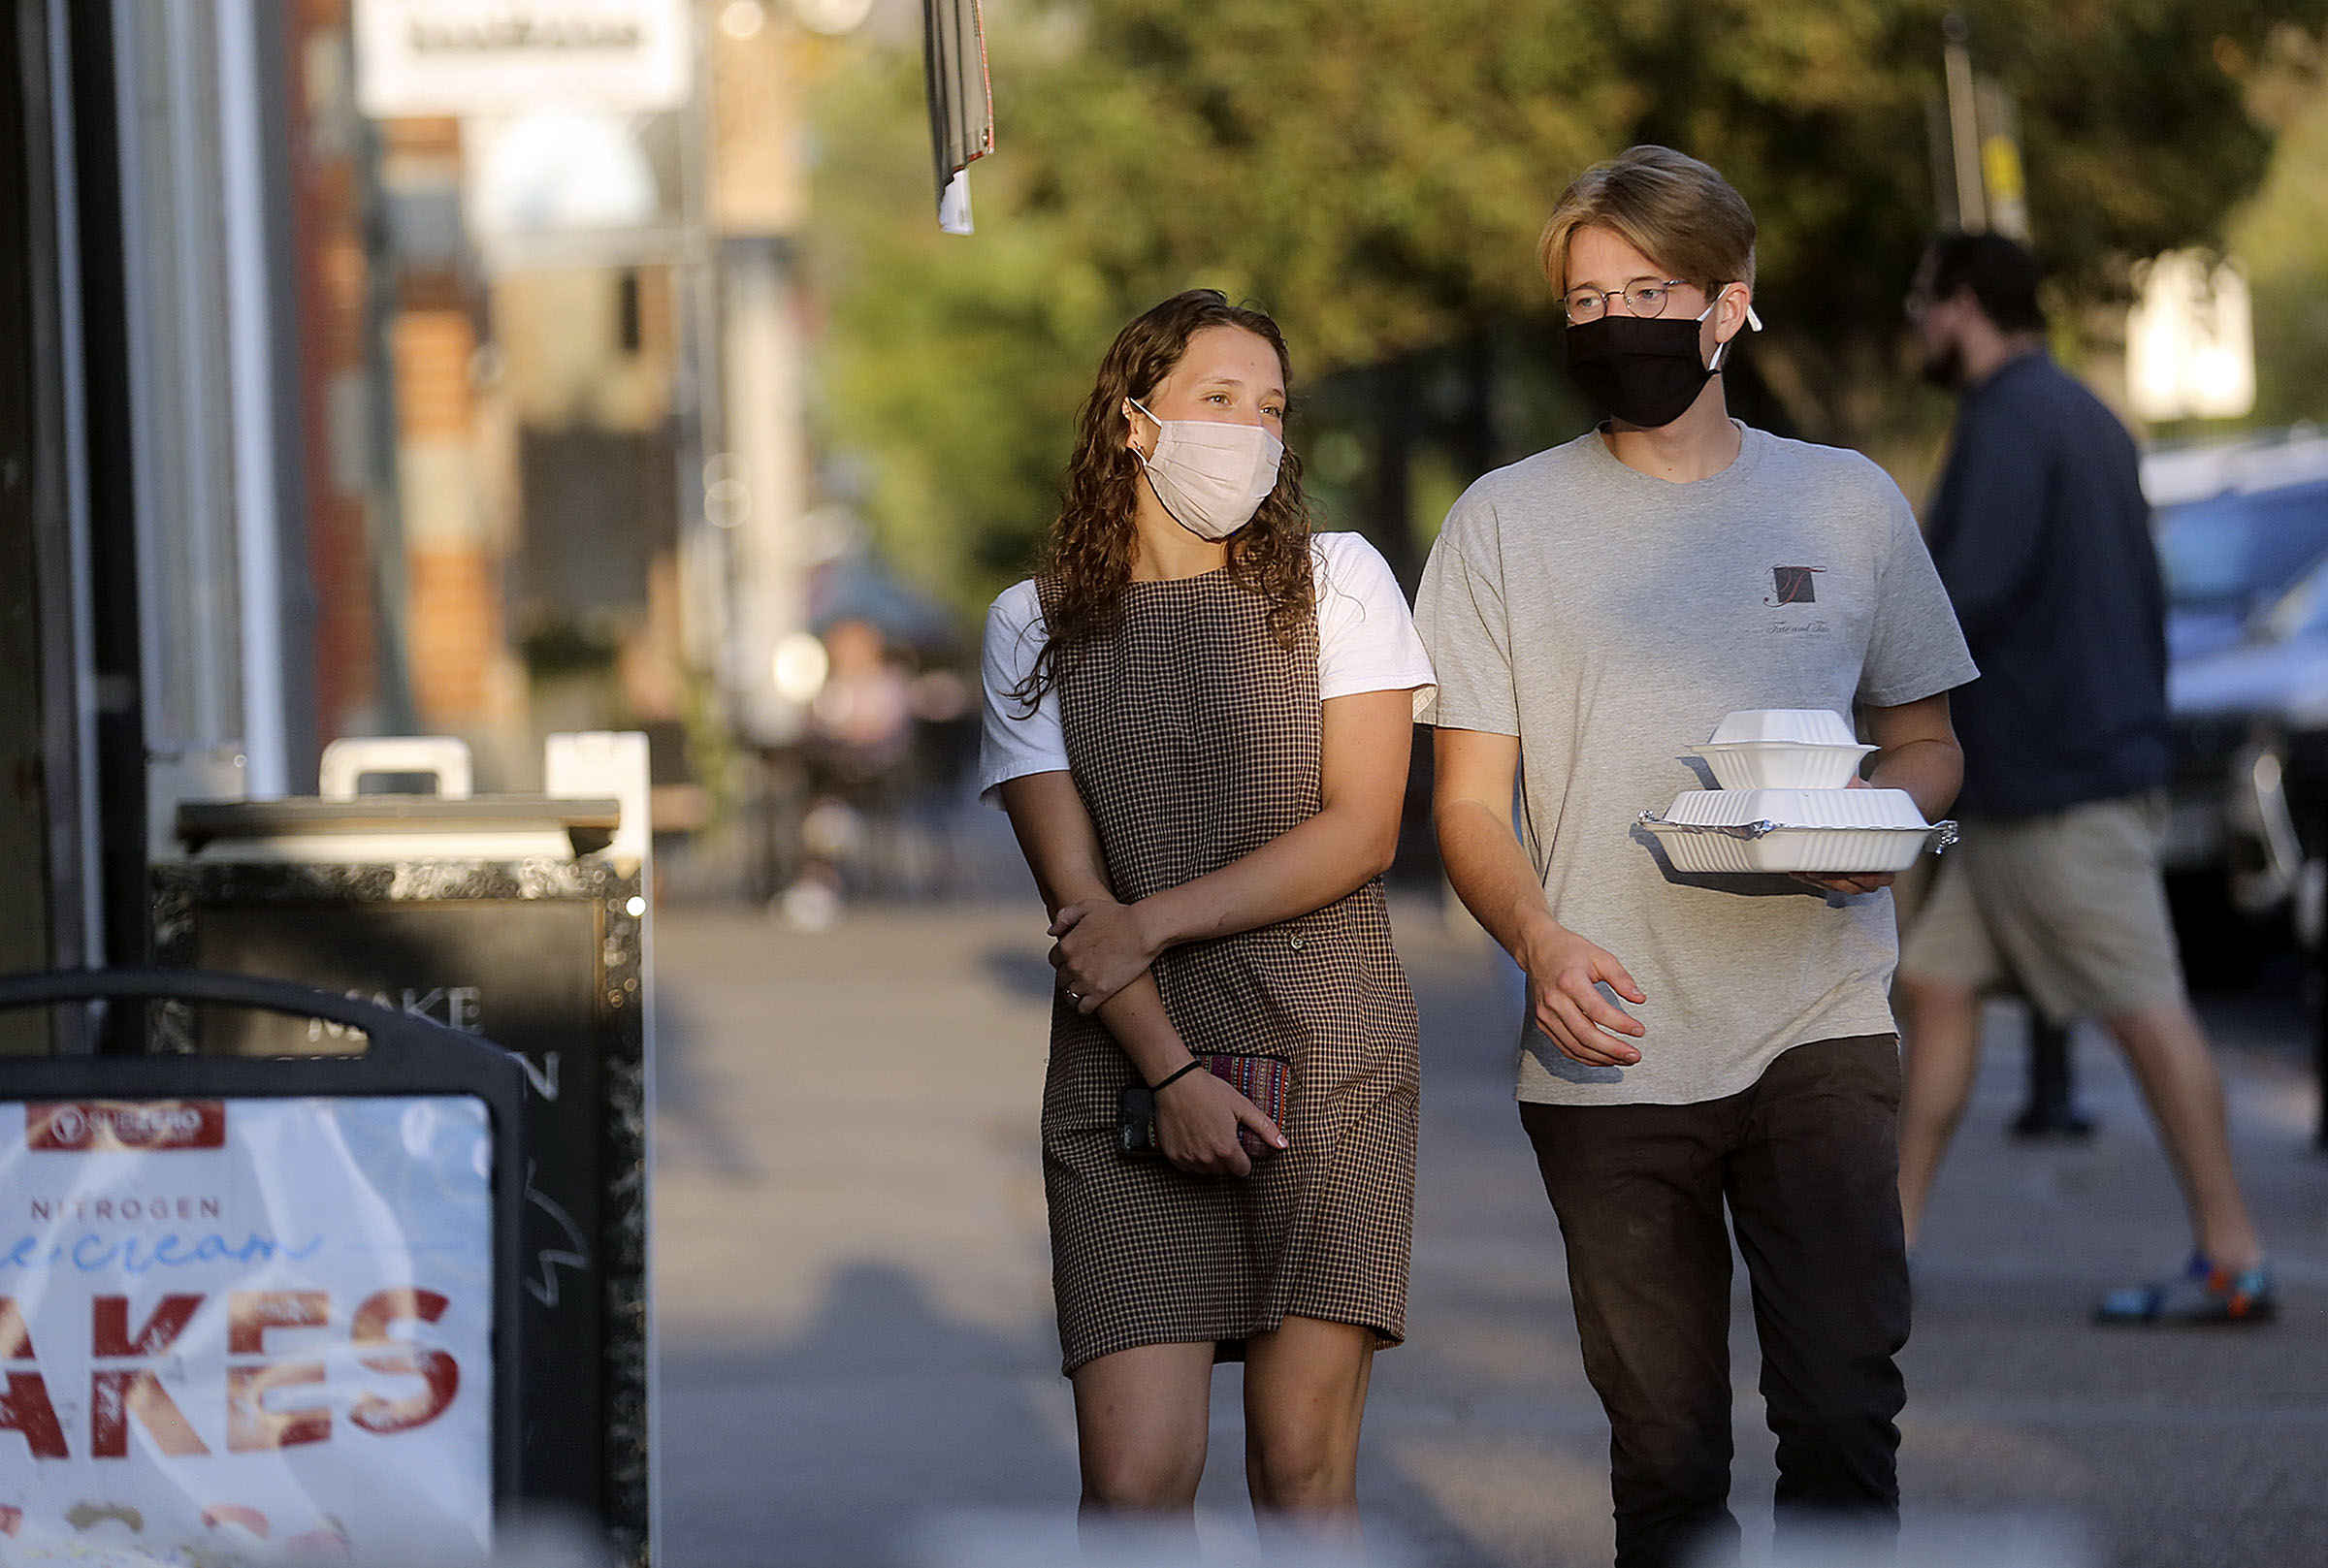 Allison Barr, 23, and Jack Barr, 24, walk through downtown Provo on Monday, Sept. 14, 2020. The majority of recent COVID-19 cases are among people between the ages 14-24, many of them living in Utah County.